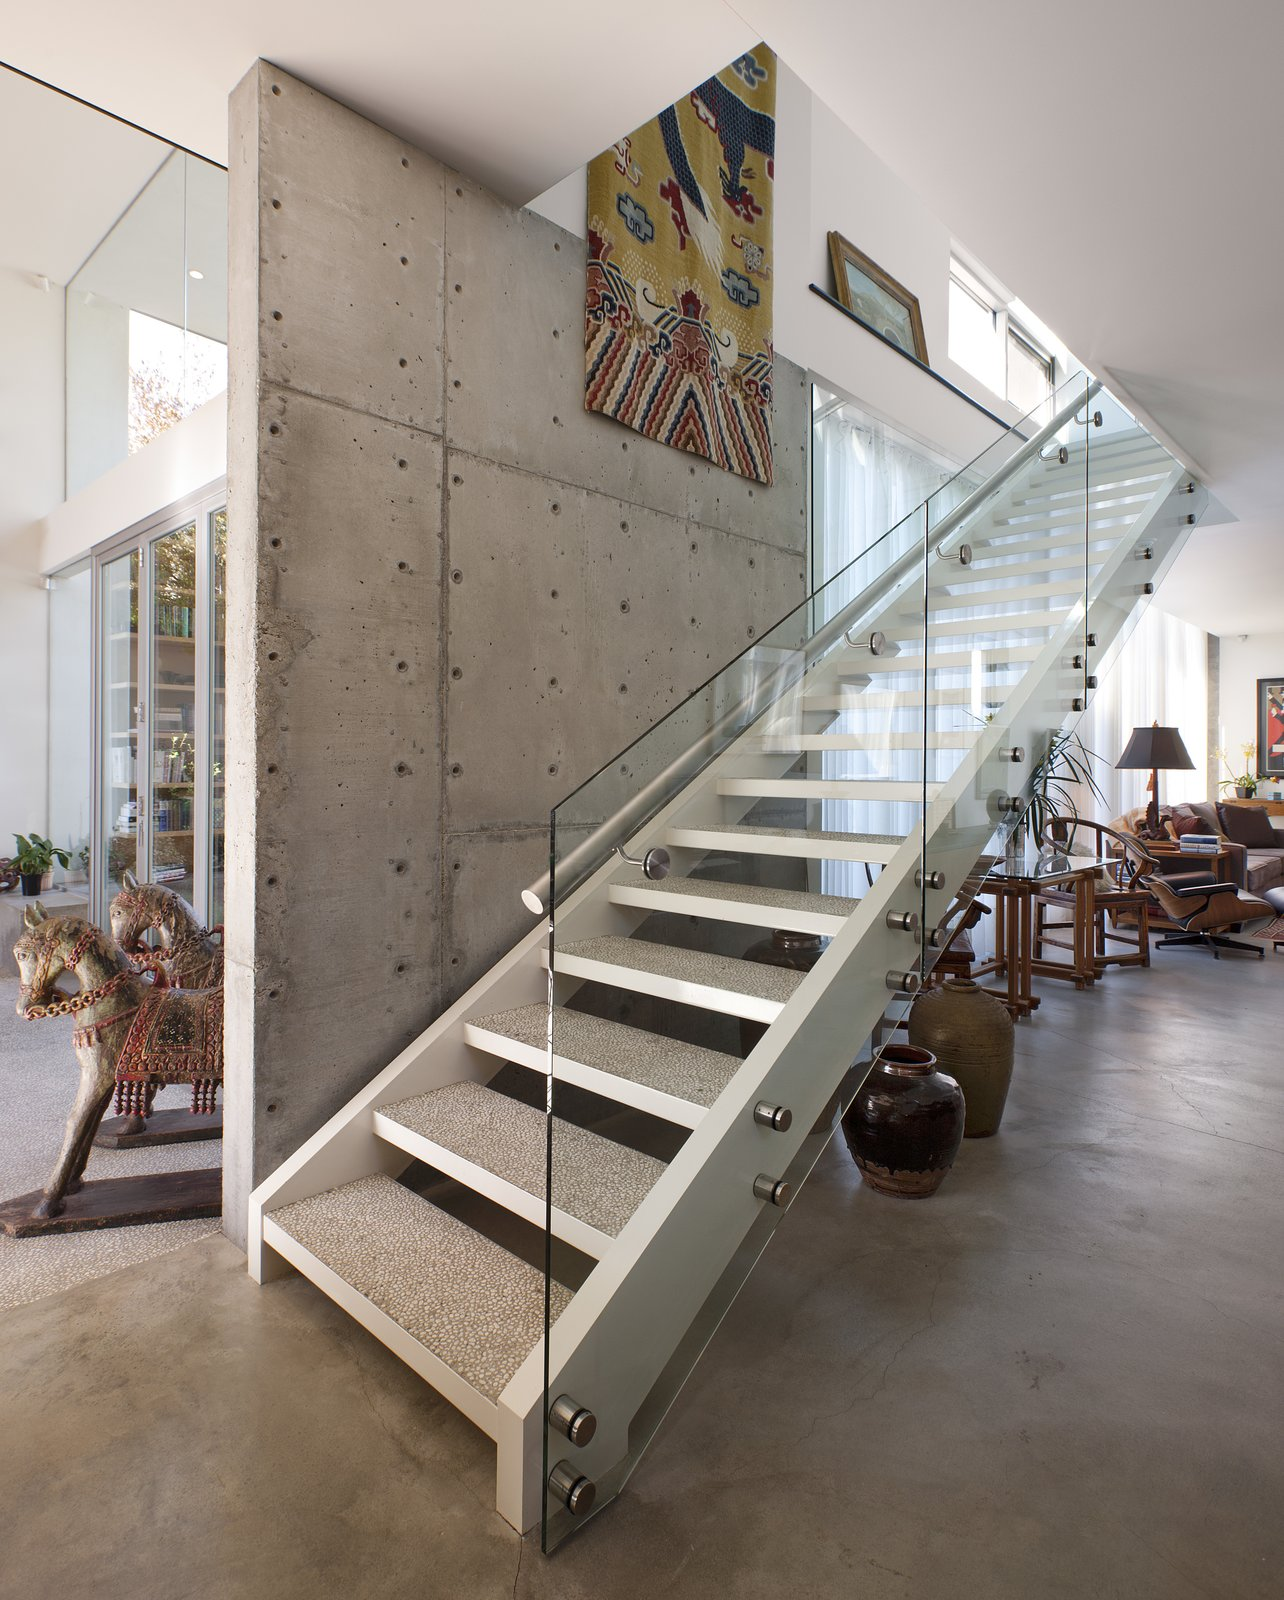 The staircase also serves as a divider between the glass half of the home, on the left, and the more solid counterpart, on the right.